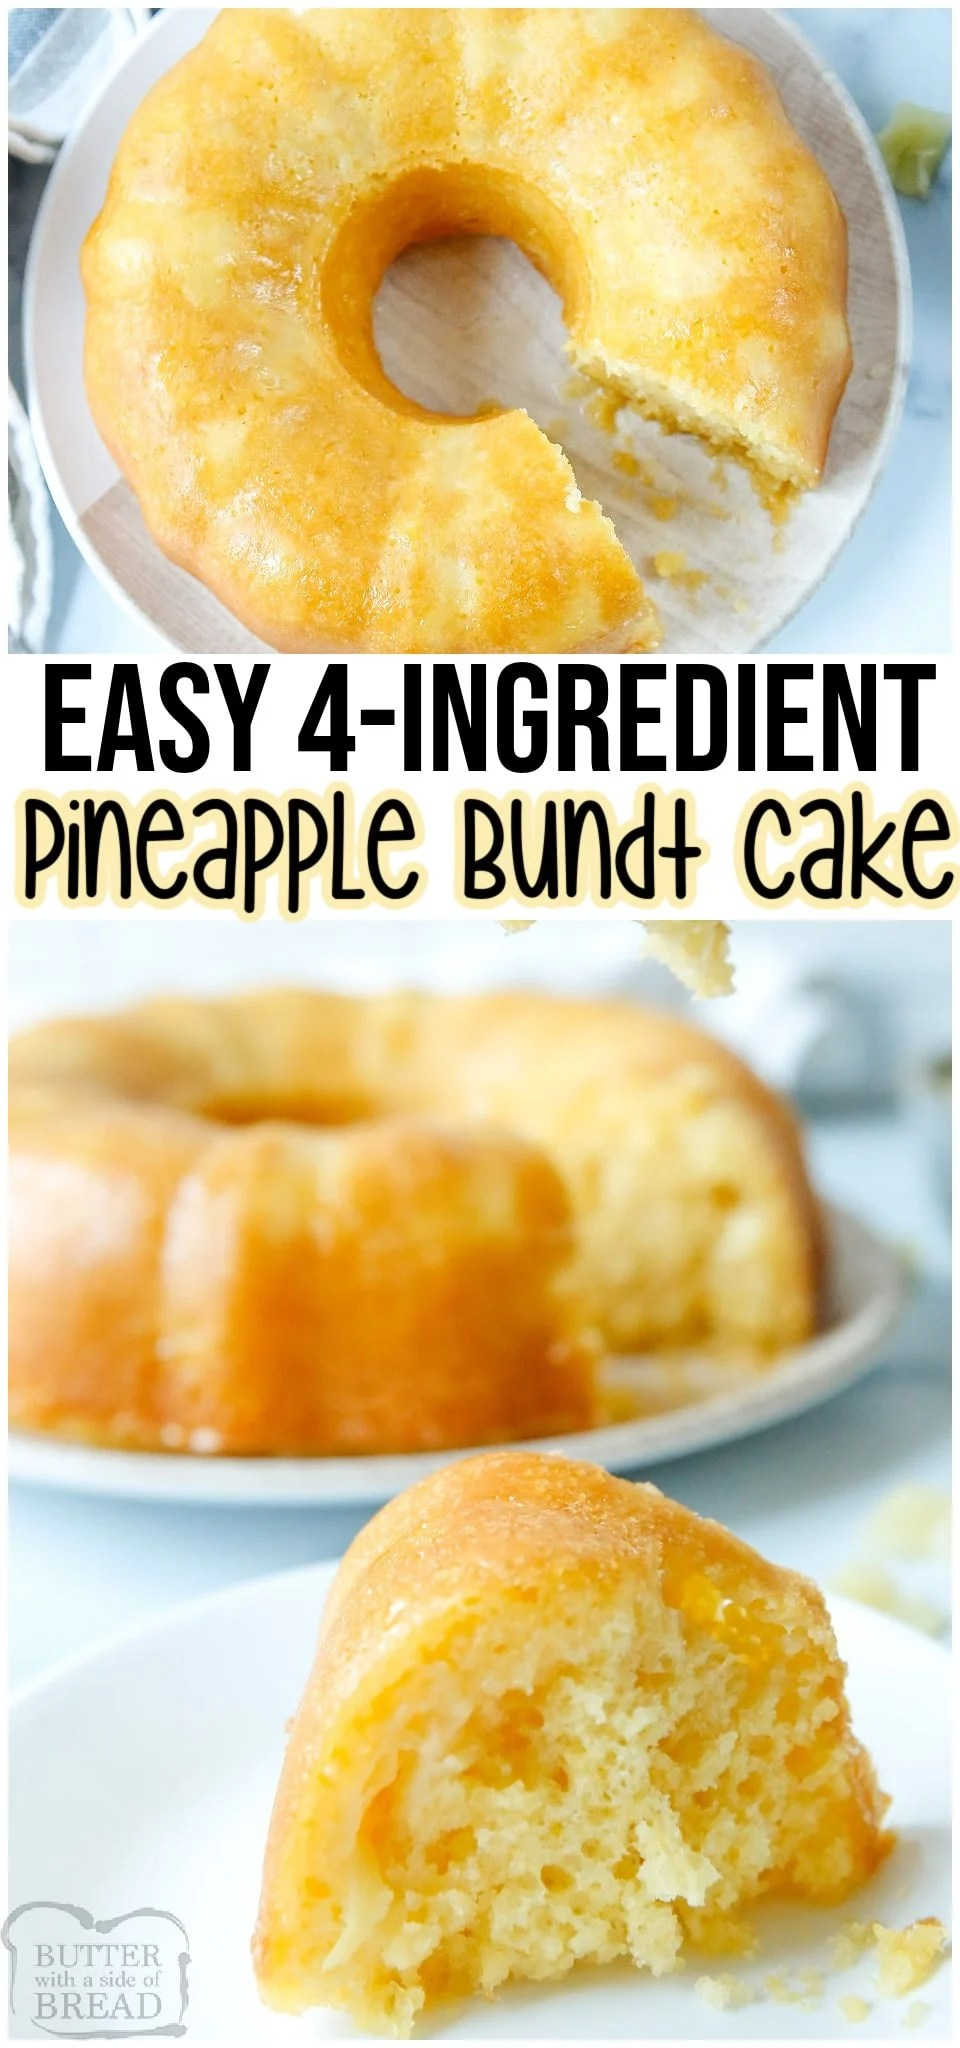 Easy Pineapple Bundt Cake made with just 4 ingredients and SO GOOD! Canned pineapple with the juice, a cake mix & butter combine for this deliciously simple bundt cake recipe! #bundt #pineapple #cake #easycake #cakemix #cakerecipe #dessert #baking #easyrecipe from BUTTER WITH A SIDE OF BREAD